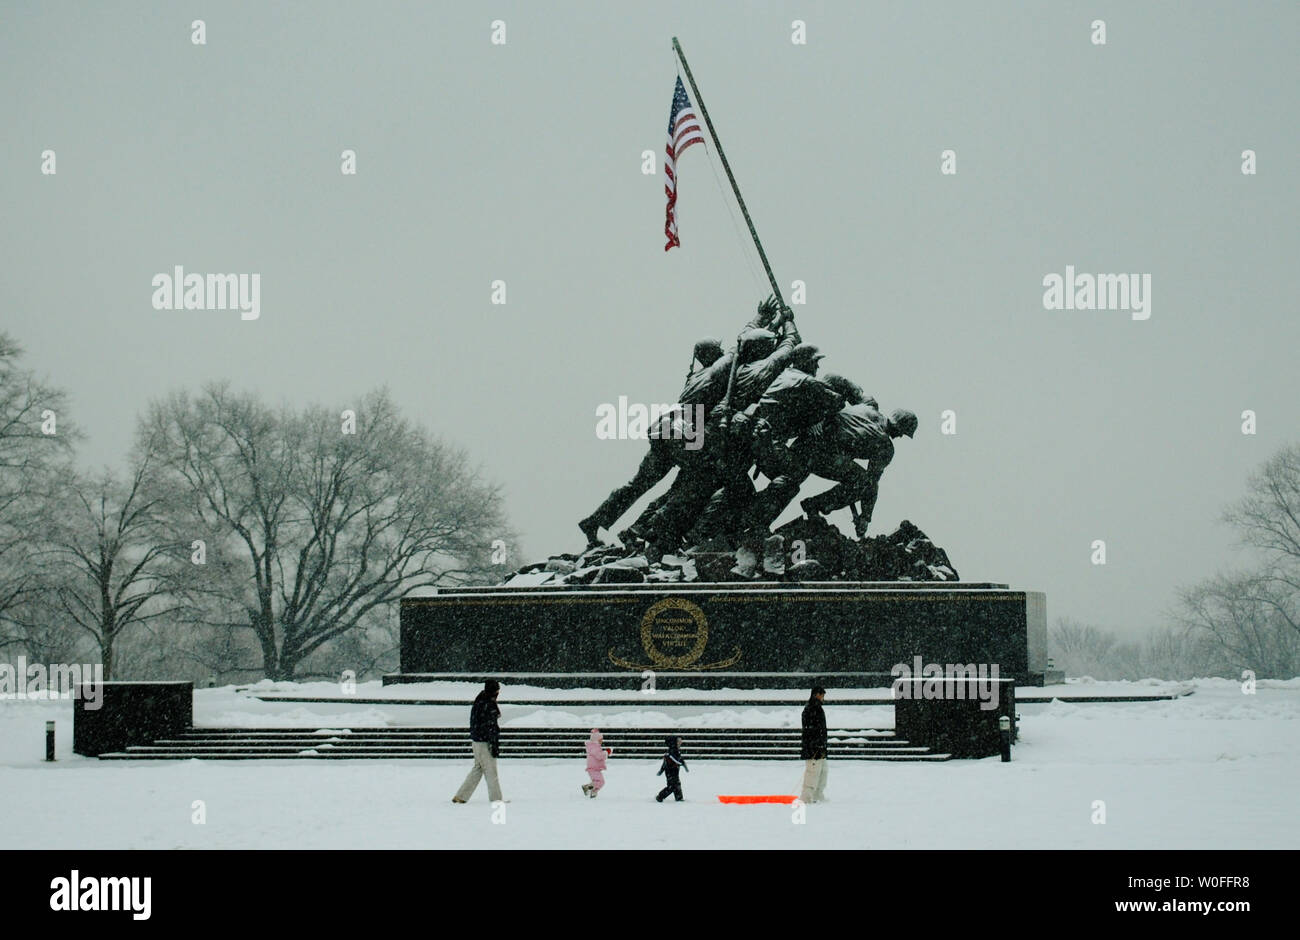 The Iwo Jima memorial is seen during a snow storm in